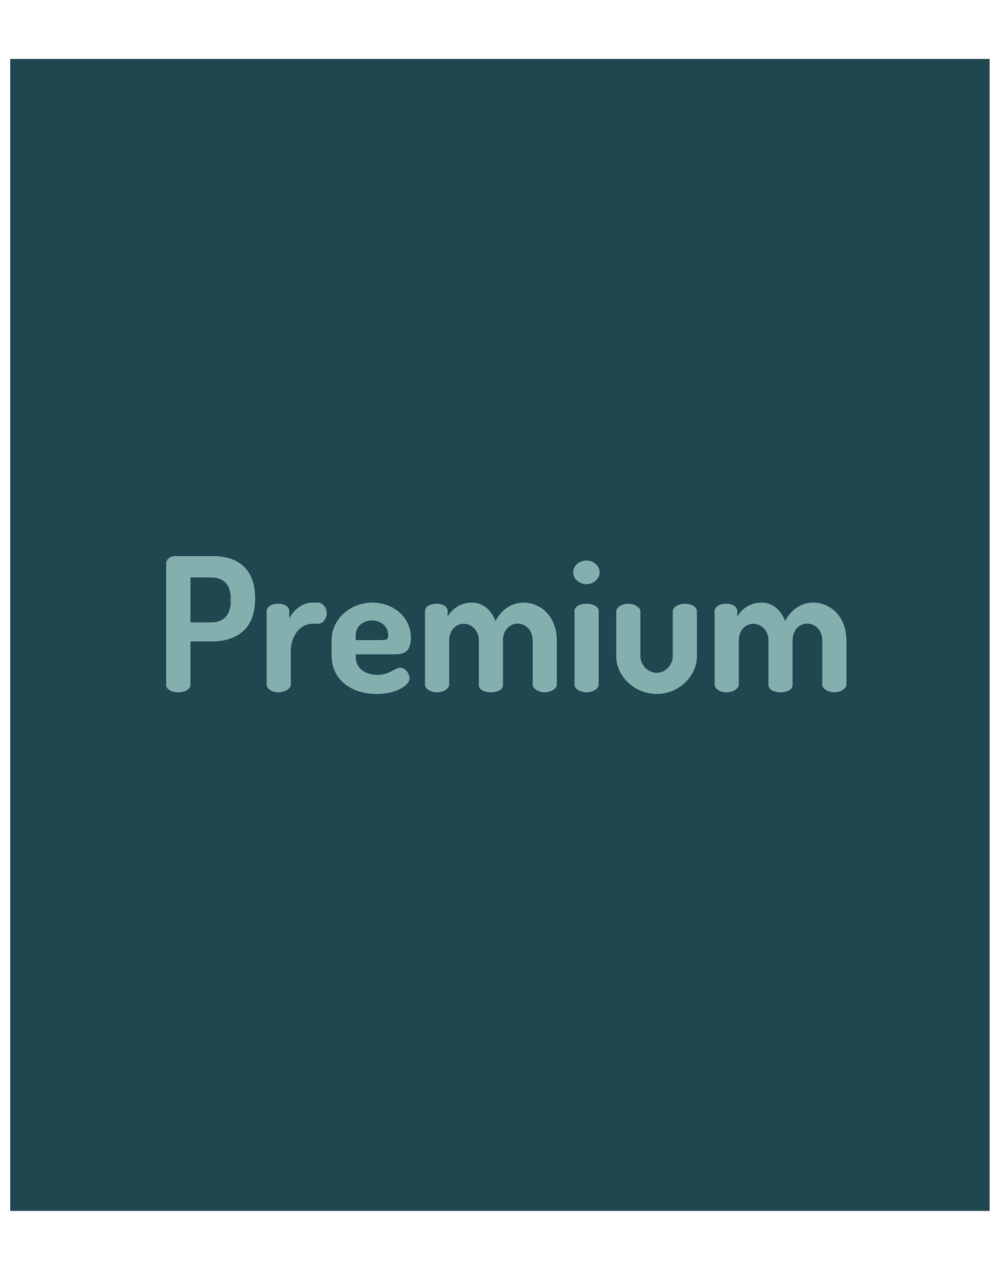 PREMIUM : Most health plans come with a premium you must pay every month, even if you don't use your insurance. If you do not pay your monthly premium, you could lose your health insurance.